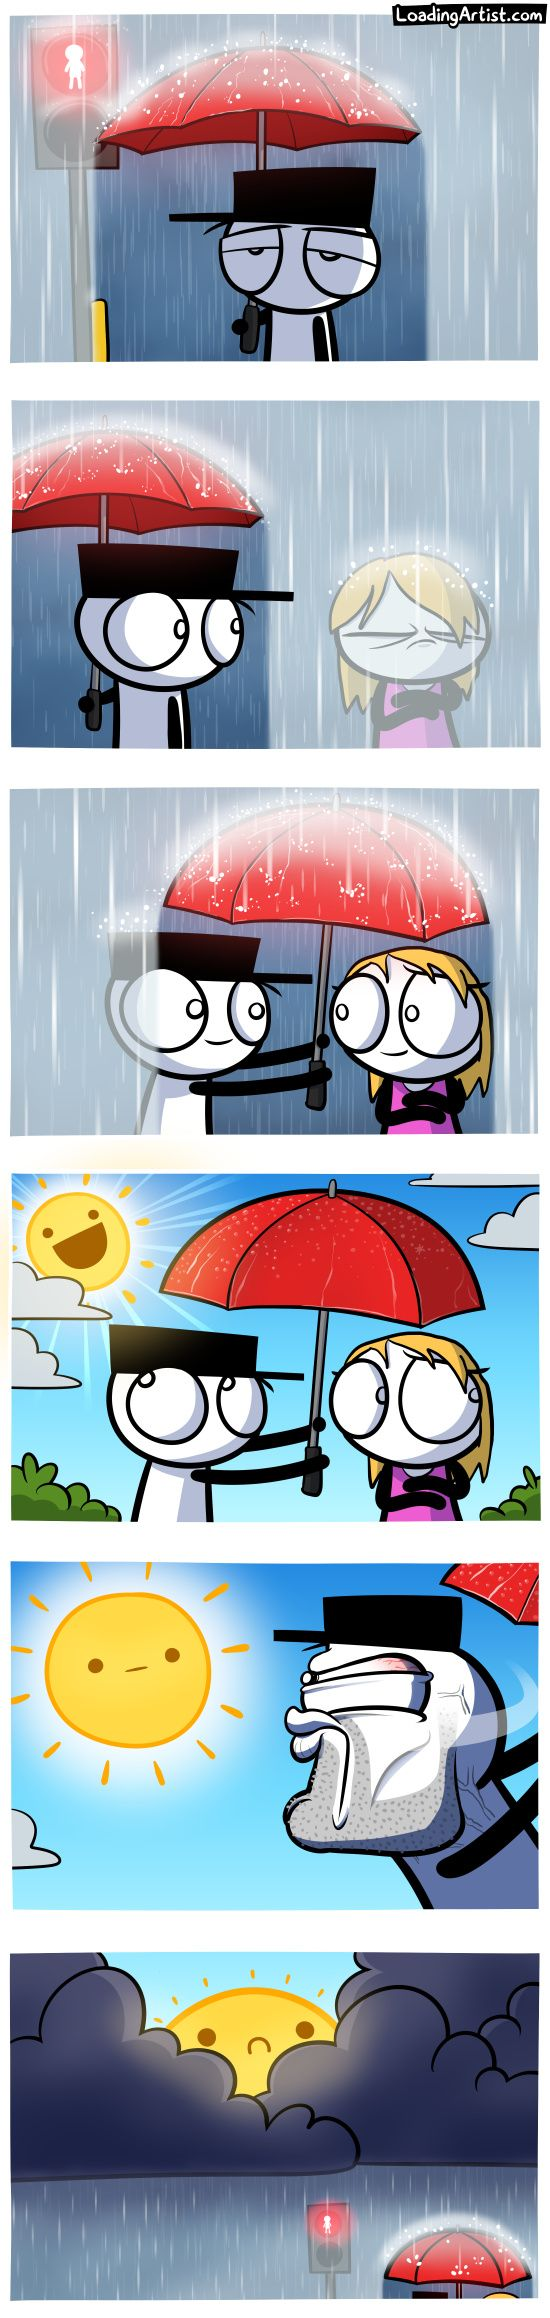 A comic about sharing a moment.. tap to view the full comic!